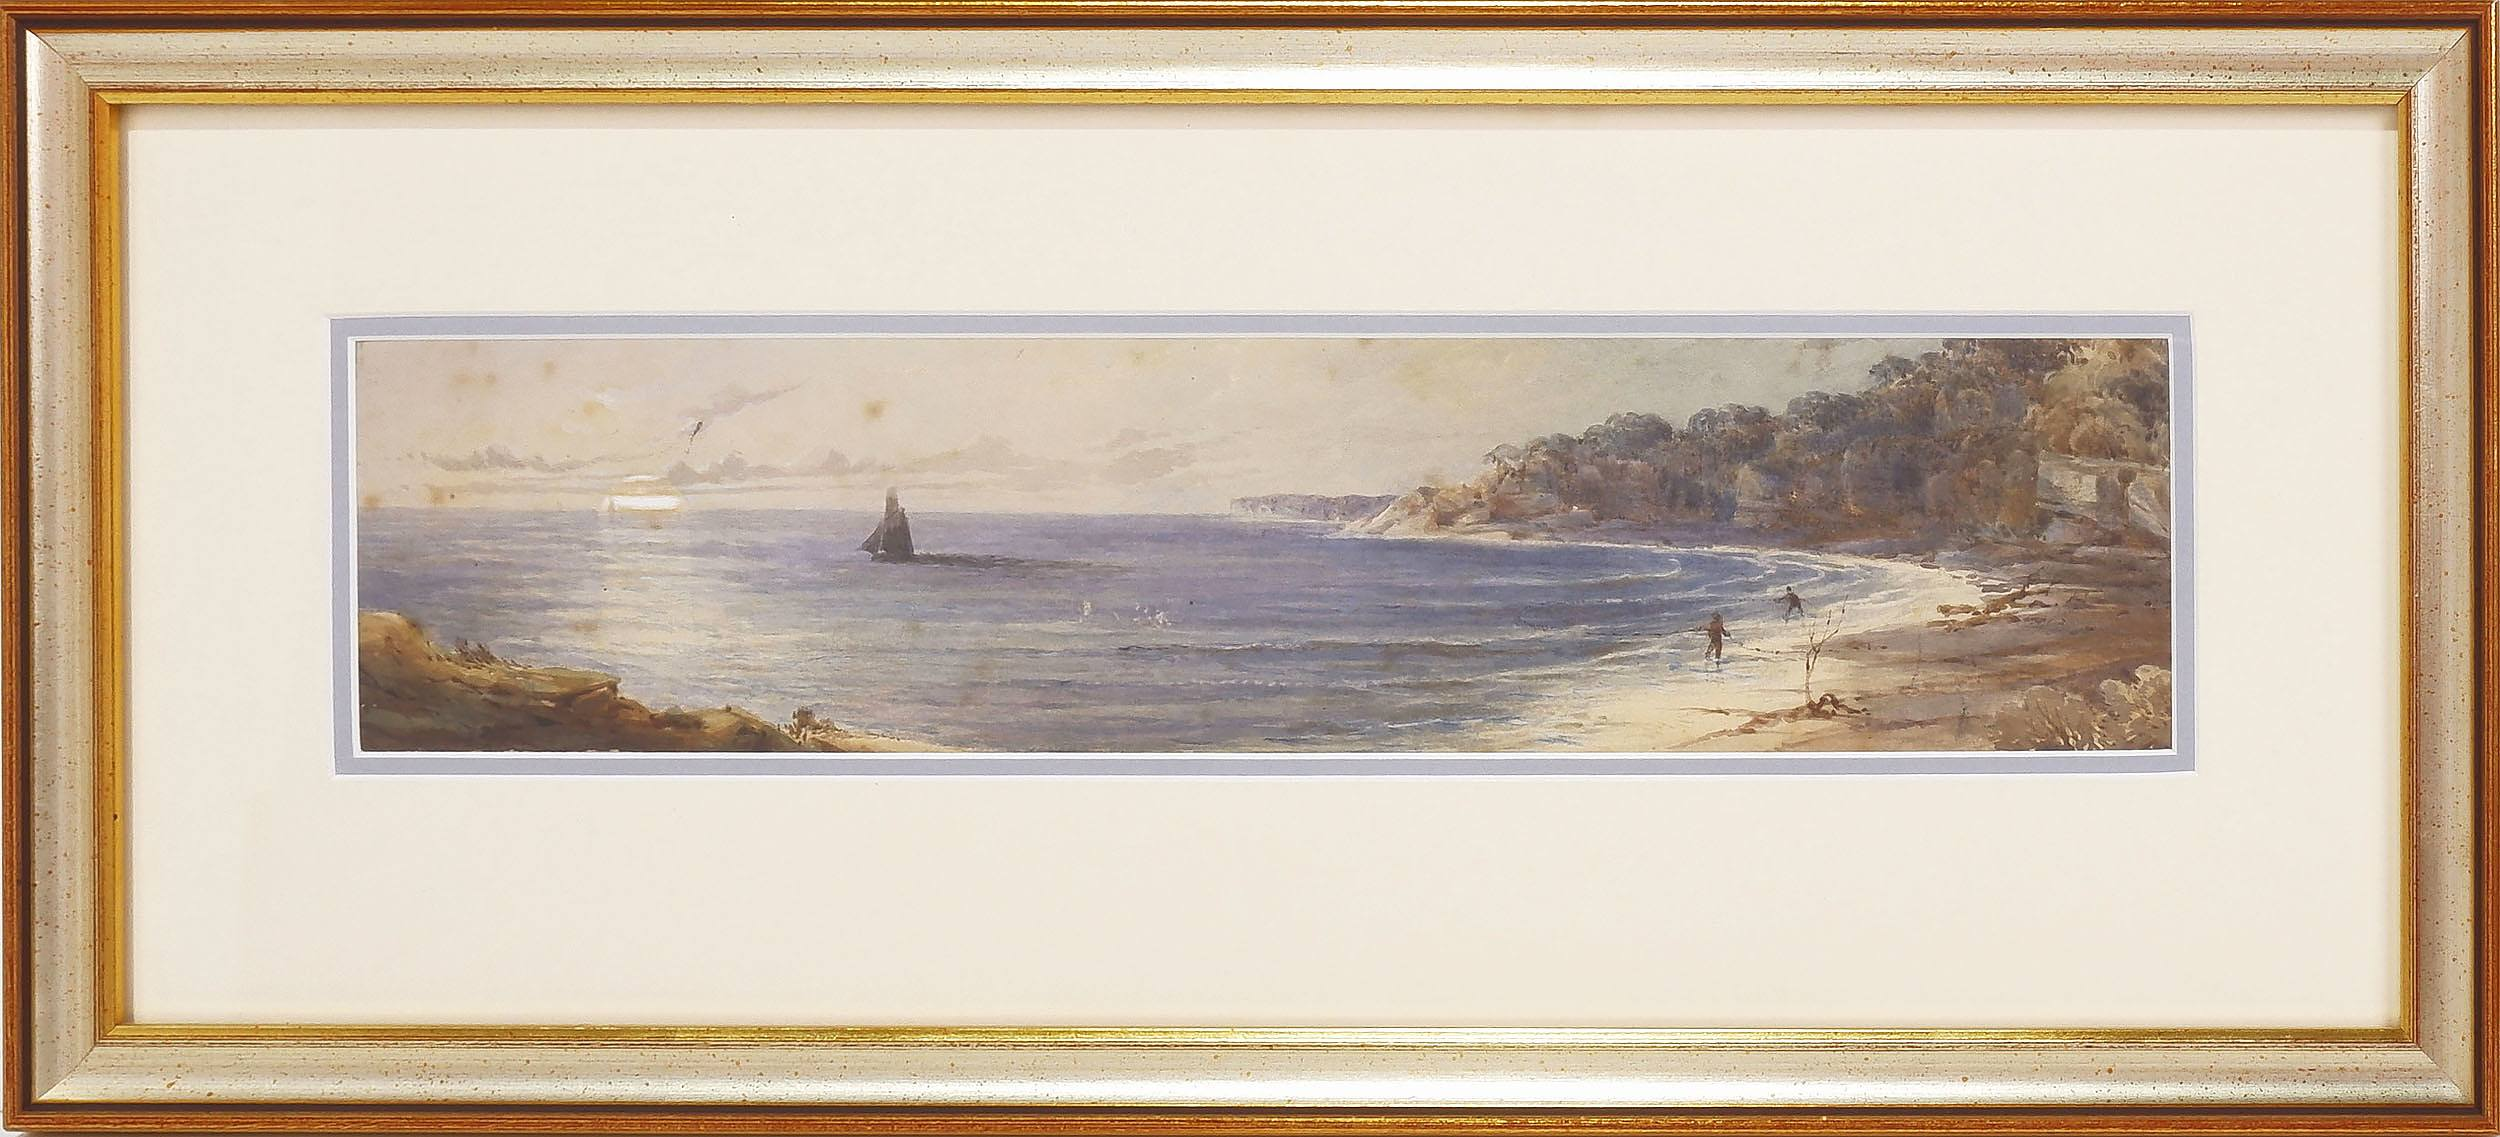 'Frederick Casemero Terry (1827-69) View Towards Sydney Heads, Watercolour Circa 1860'